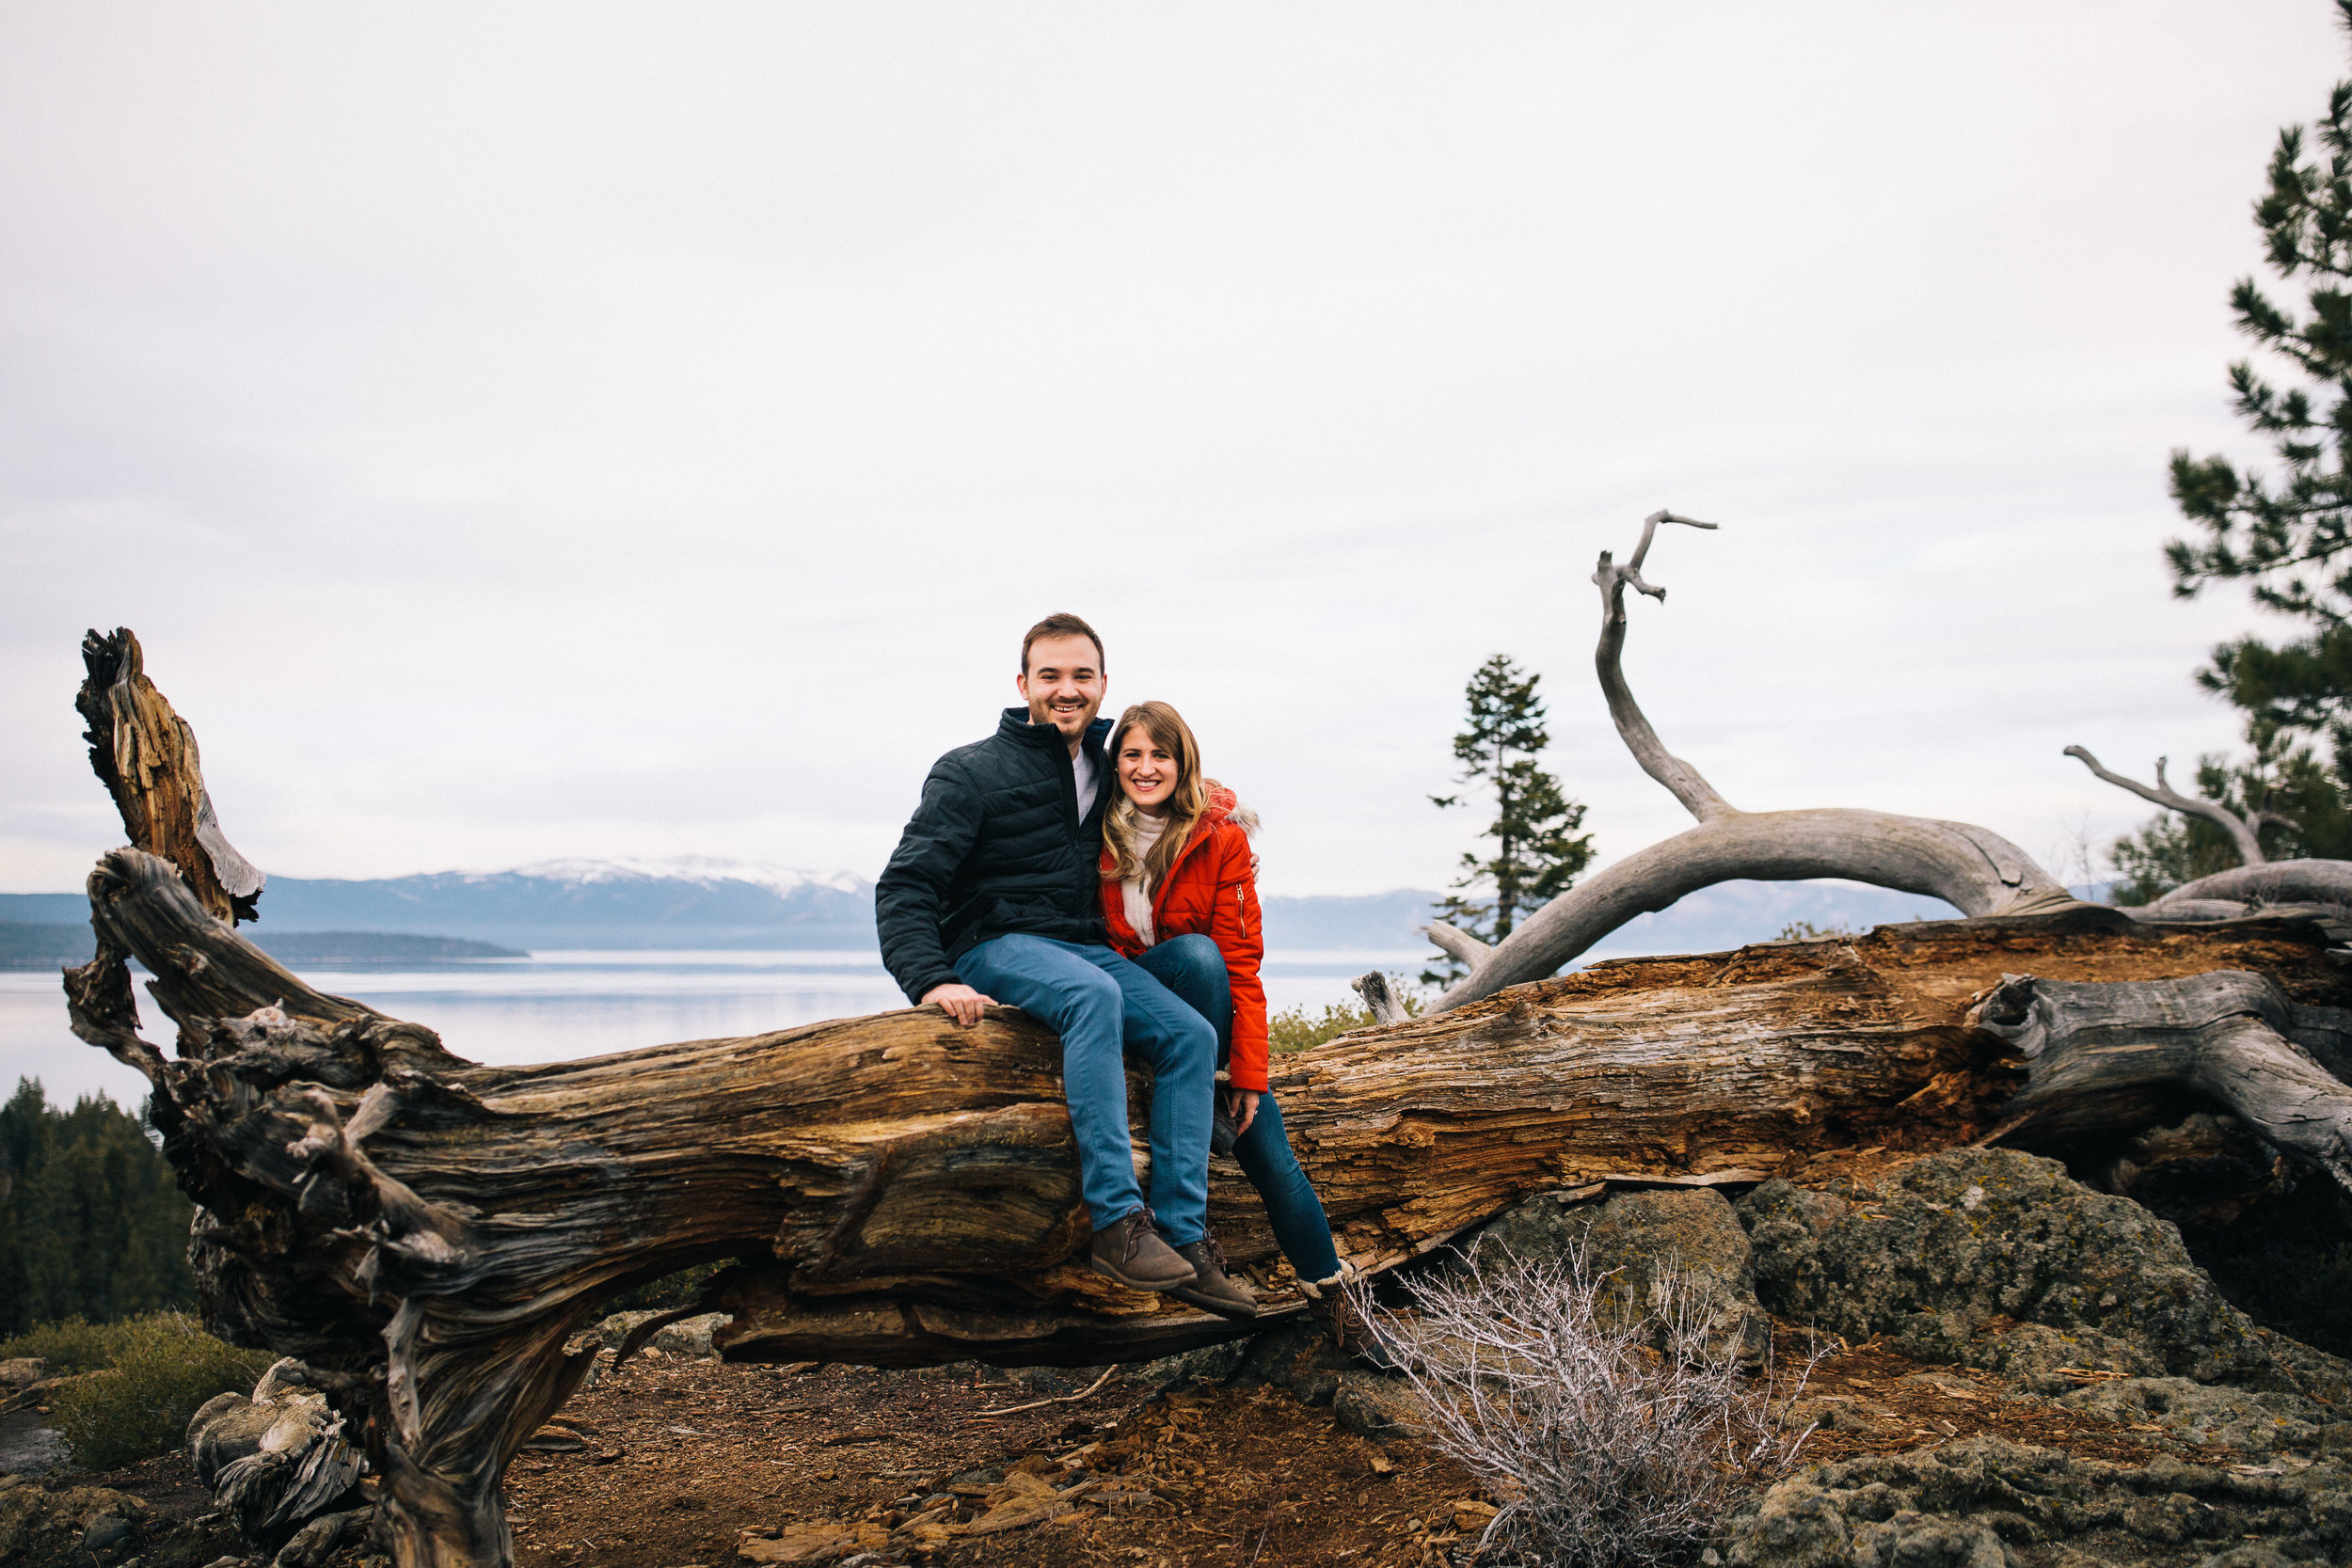 2018_01_01 Tahoe Trip 2018 Edited Full Resolution 0048.jpg